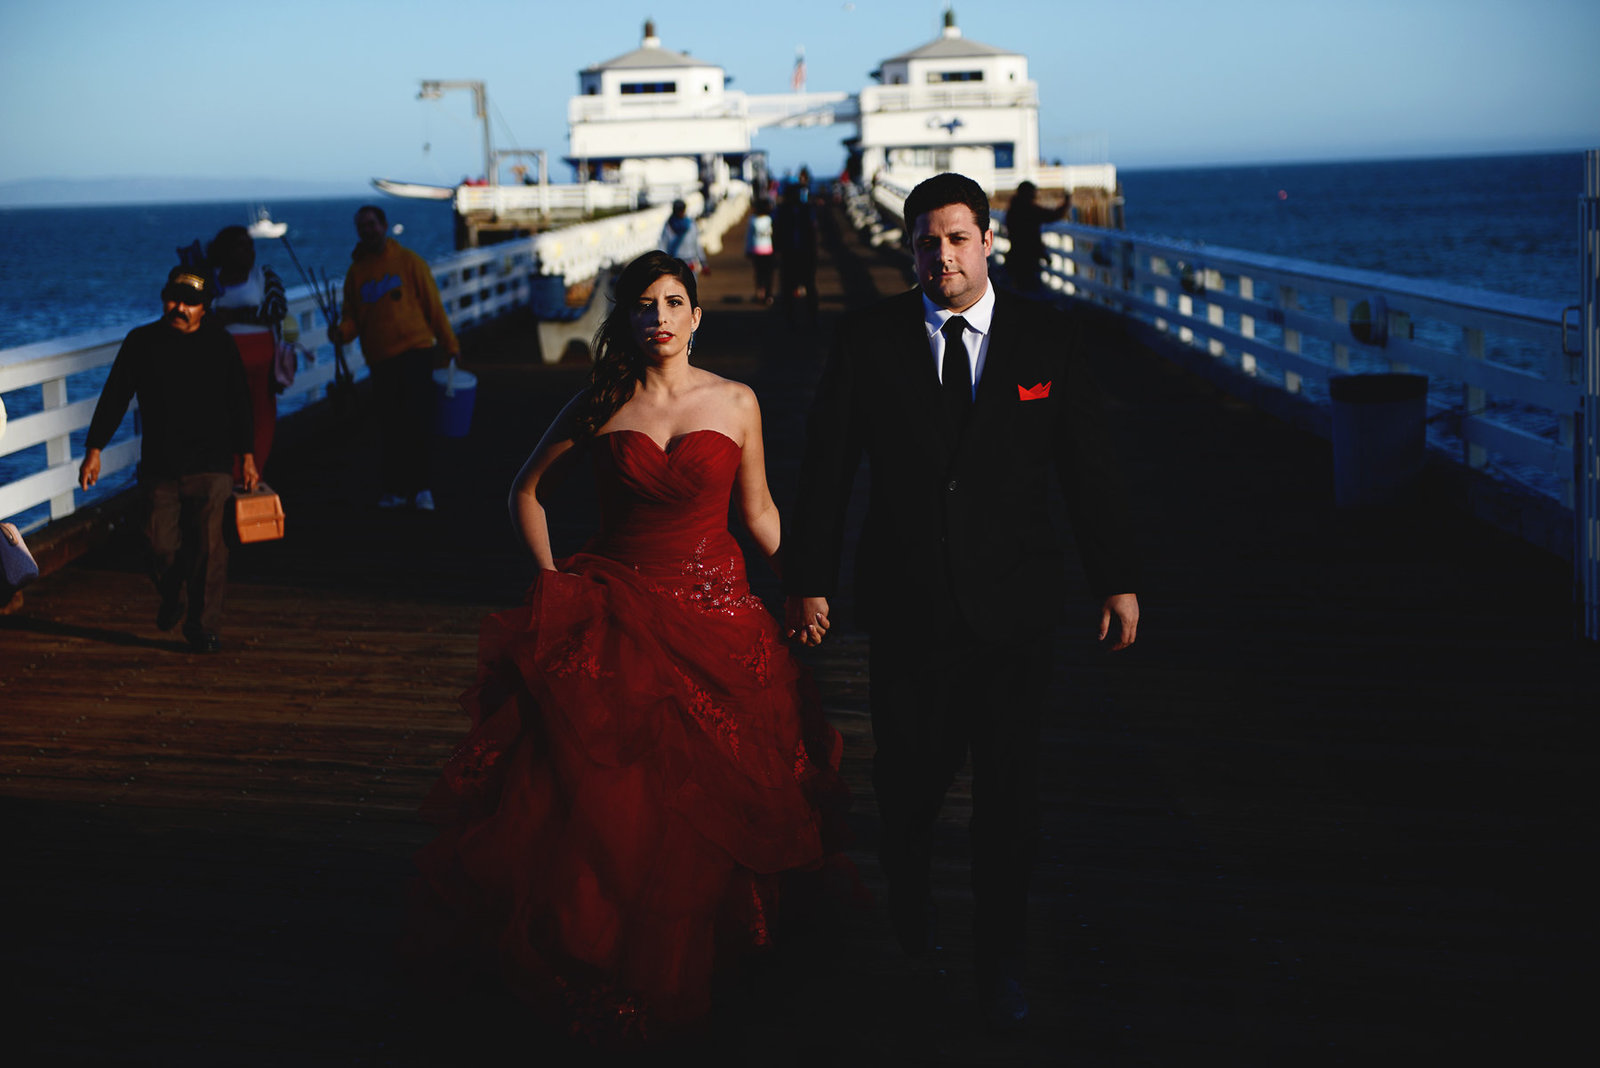 malibu wedding photographer photos celebrity wedding photographer bryan newfield photography ruth mike 32